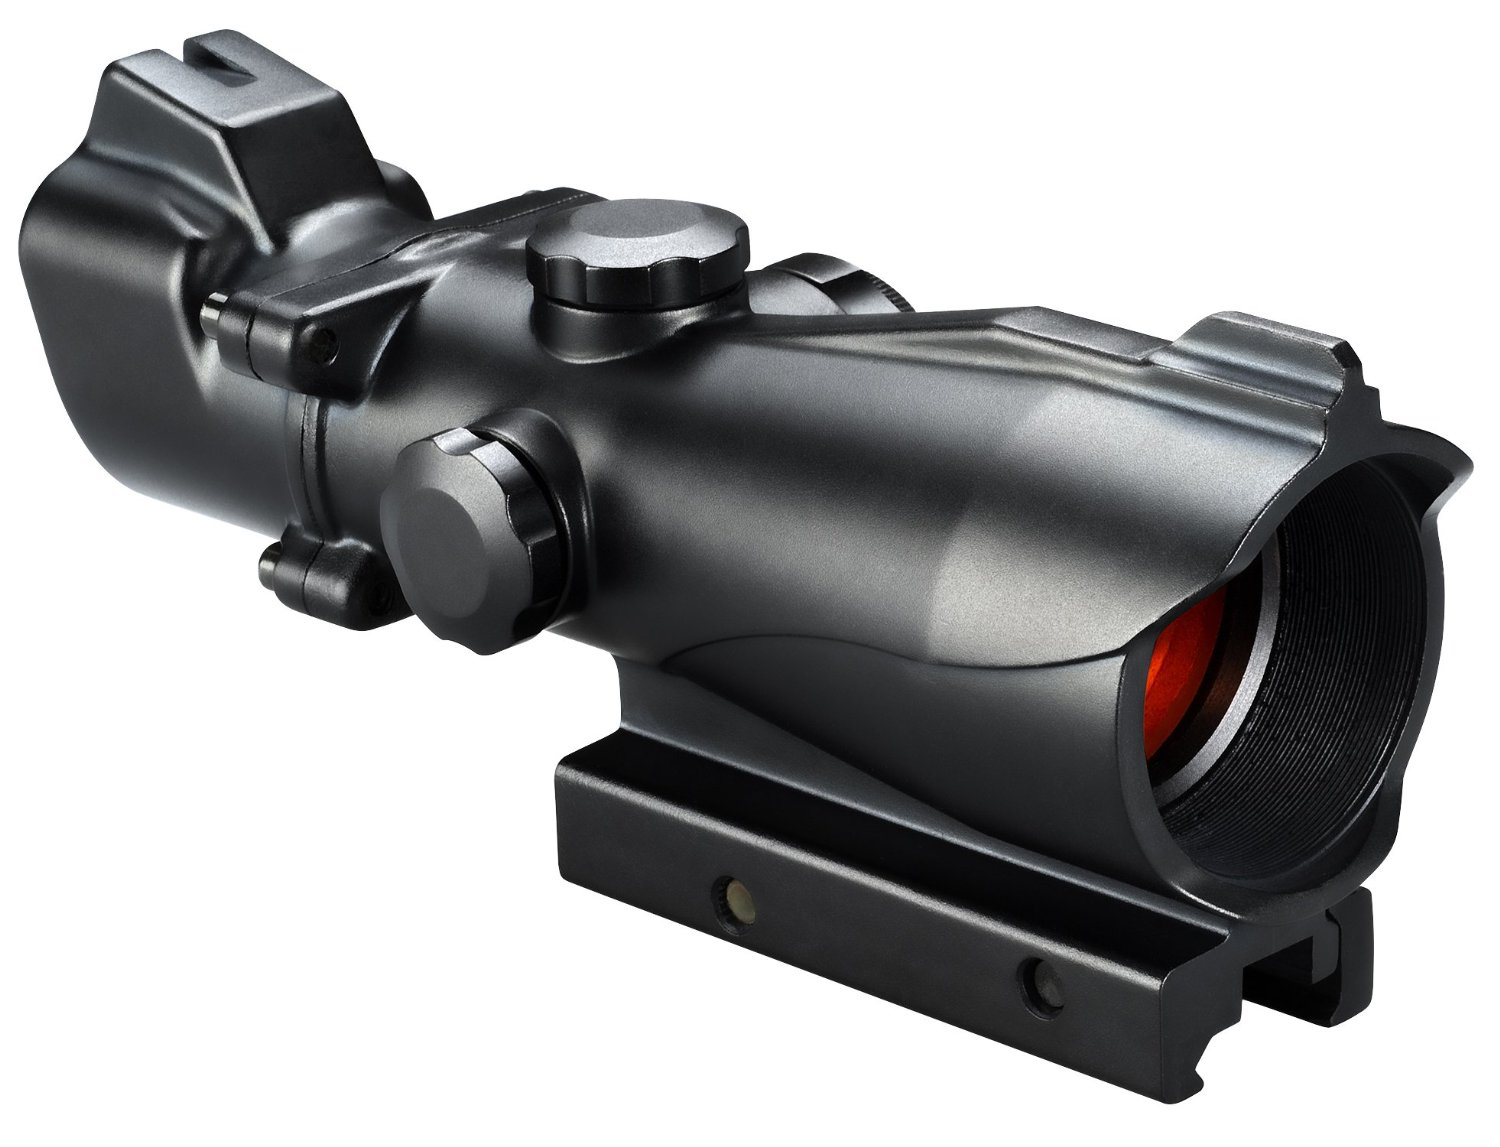 Bushnell AR Optics 1xMP Illuminated red greenRiflescope